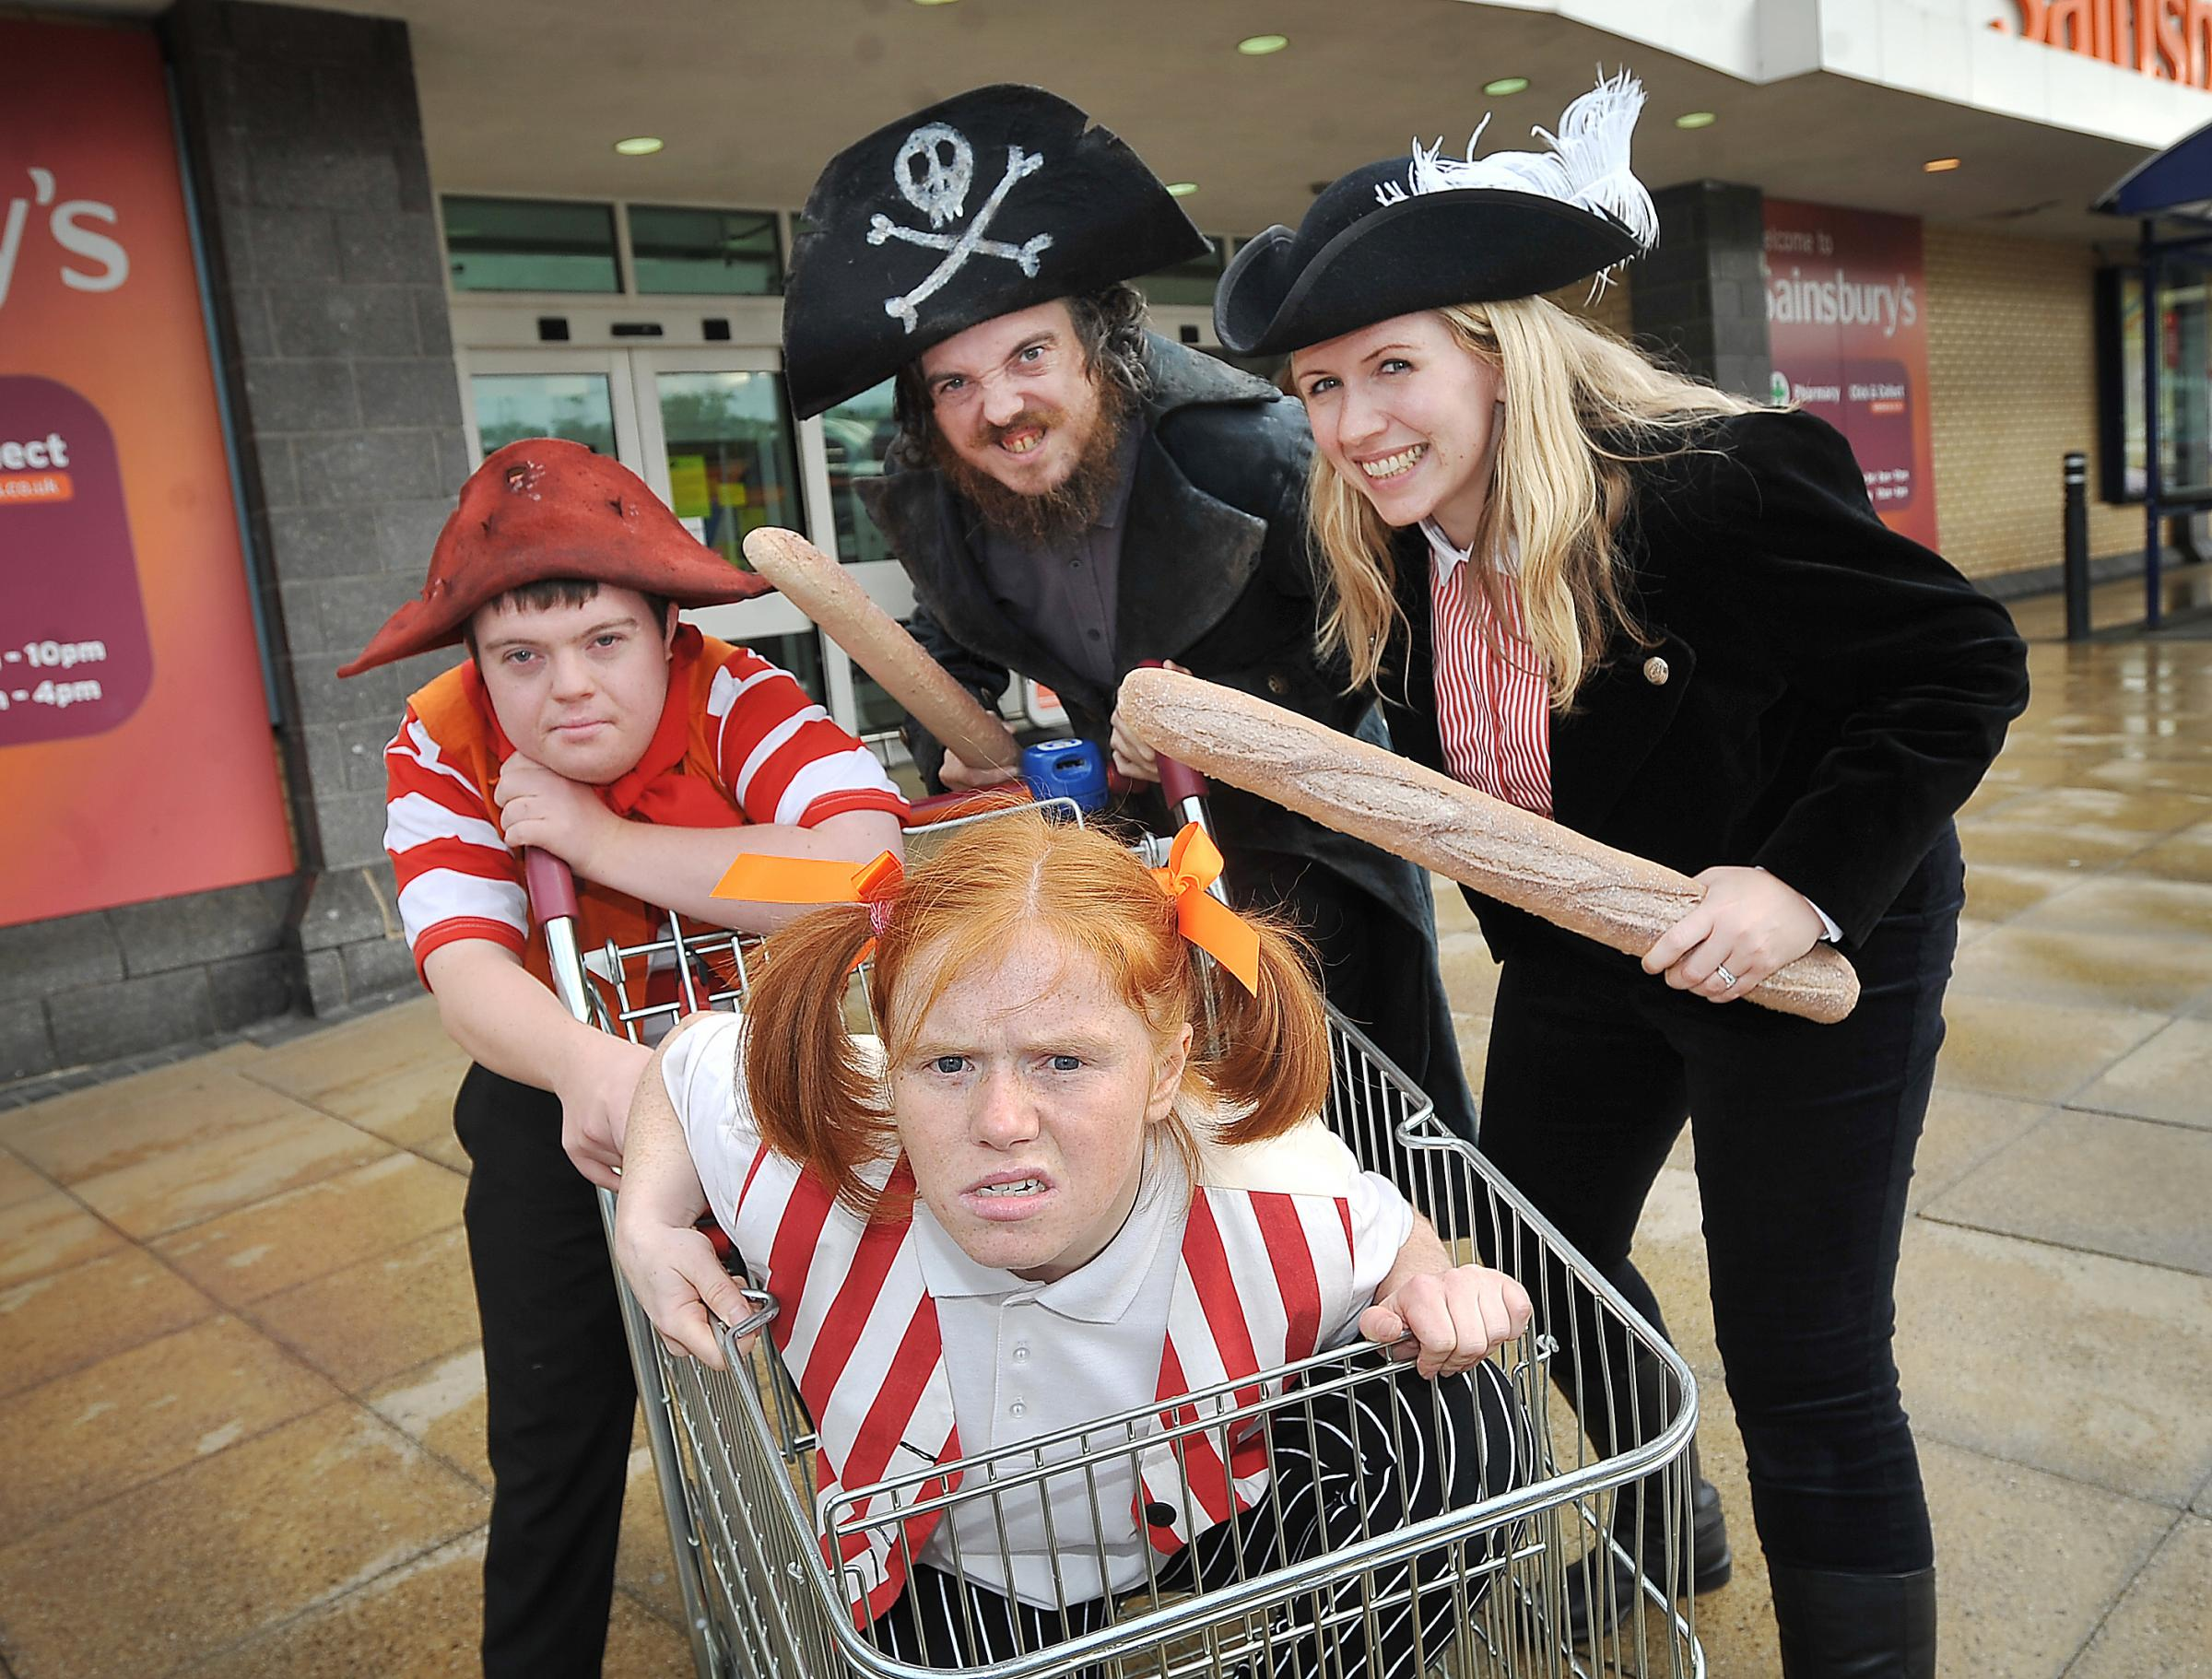 Mind The Gap actors JoAnne Haines, Gemma Ryan, Alan Clay and Liam Bairstow dress as pirates to promote a recent production of Treasure Island